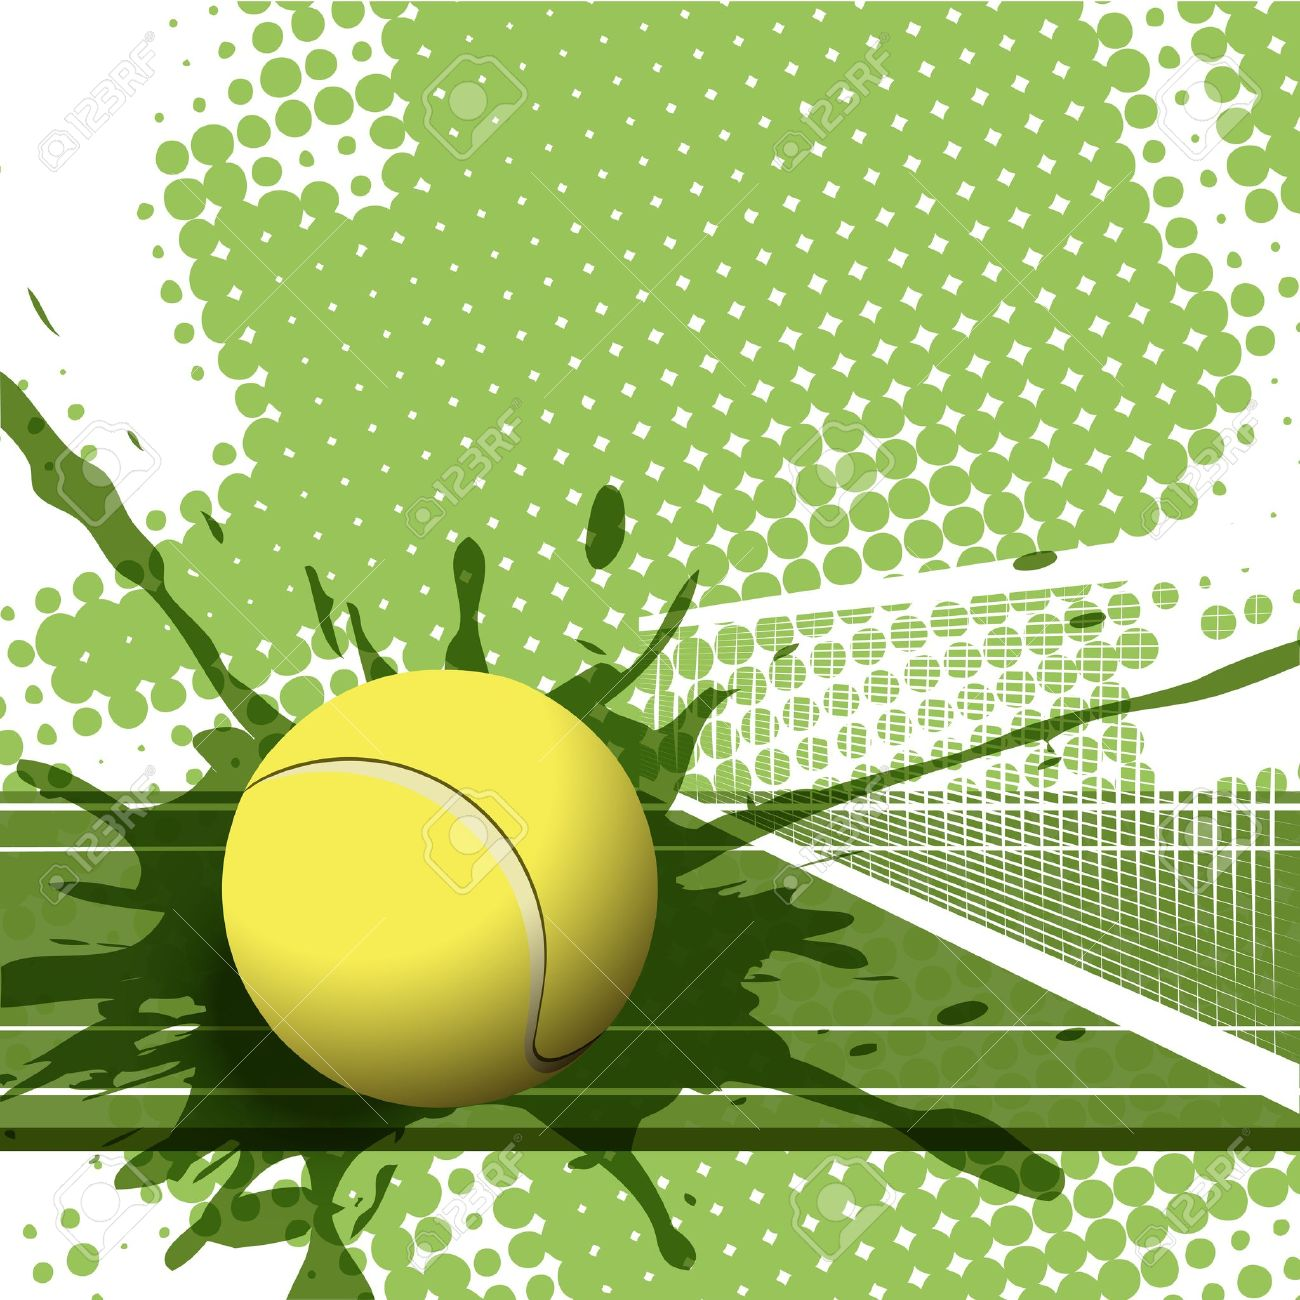 tennis: illustration tennis ball on abstract green background